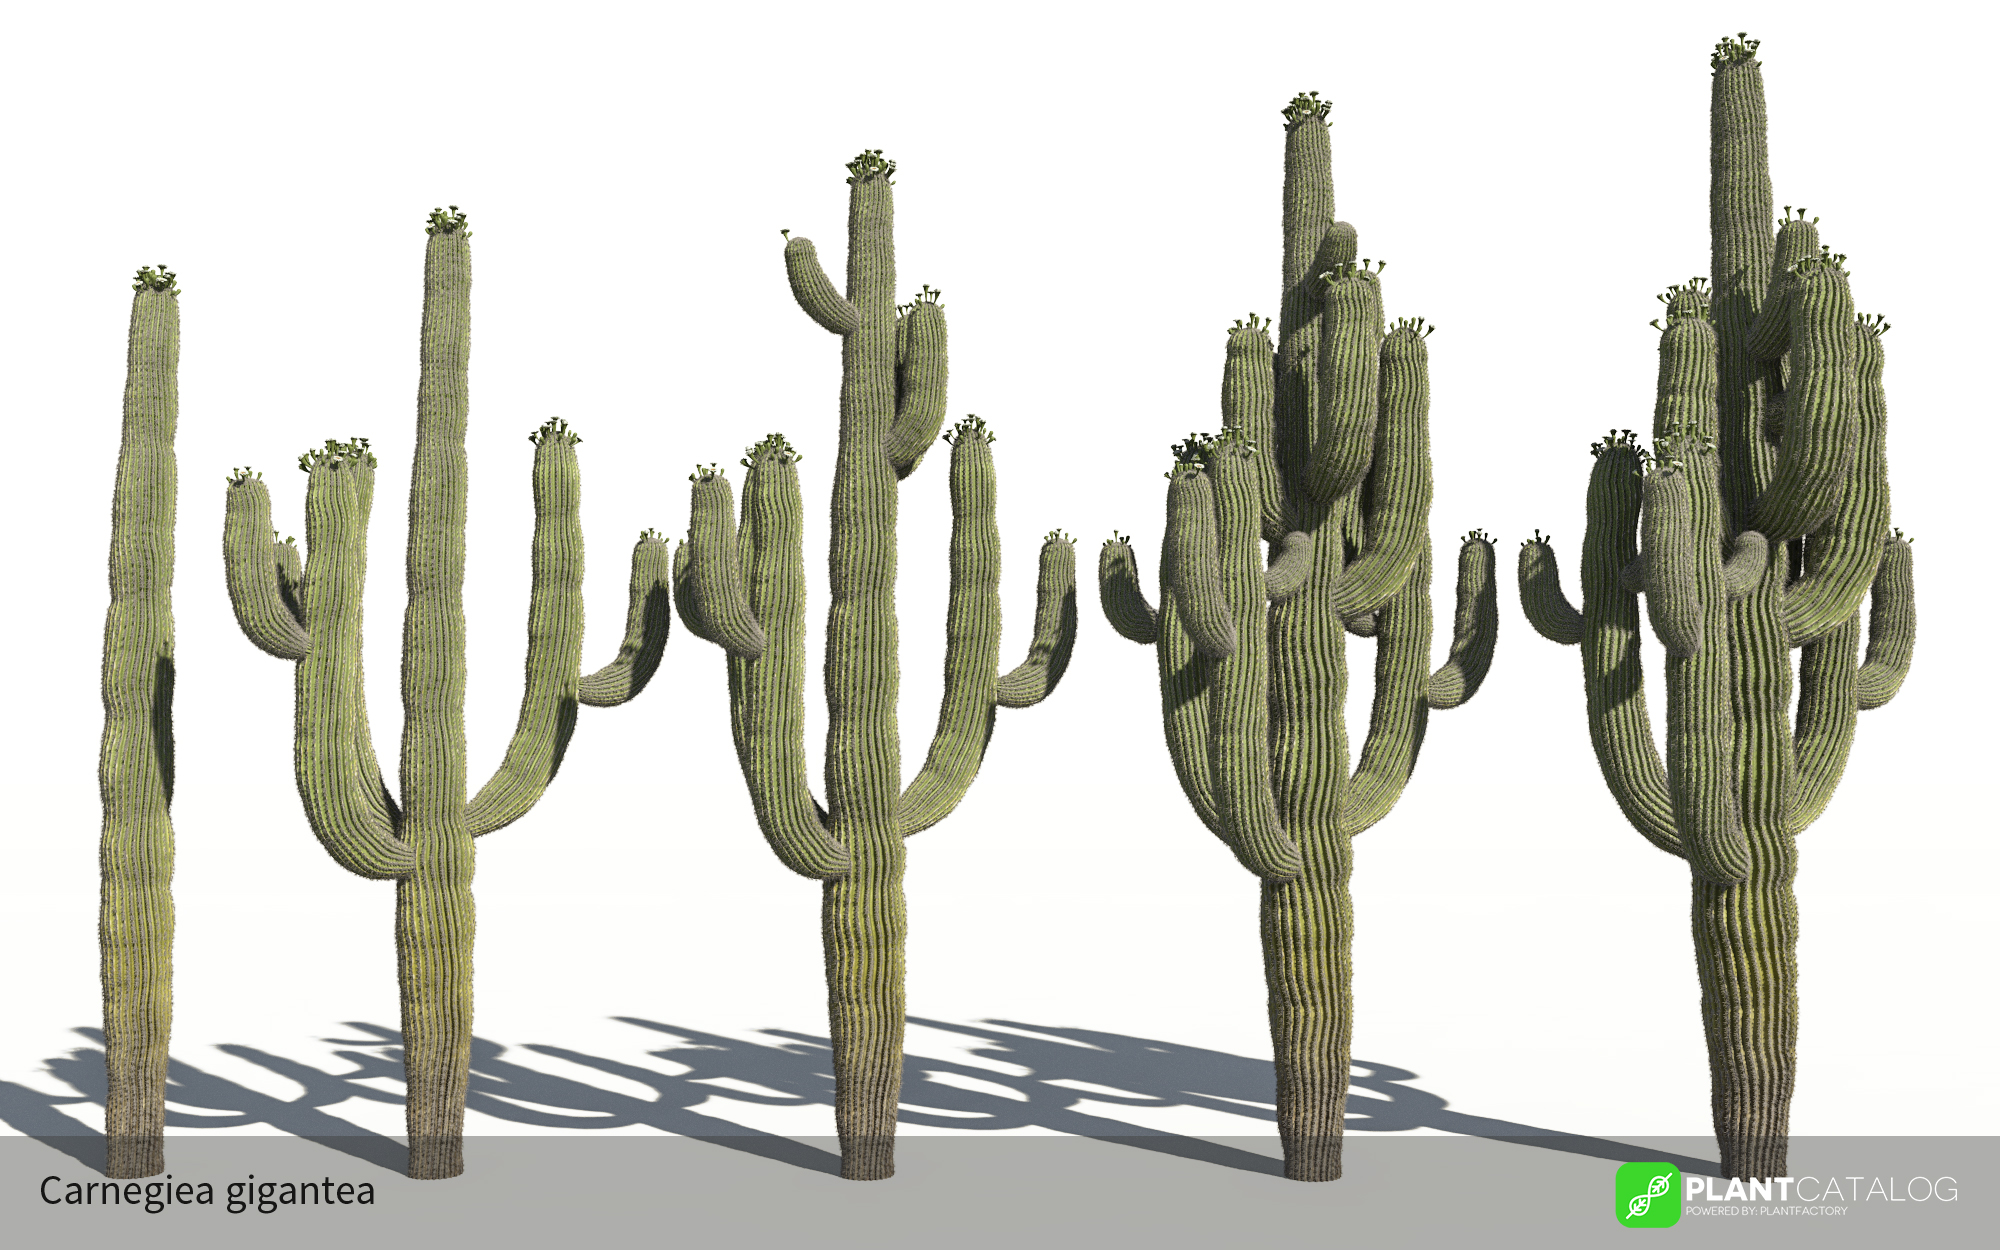 3D model of the Saguaro cactus - Carnegiea gigantea - from the PlantCatalog, rendered in VUE